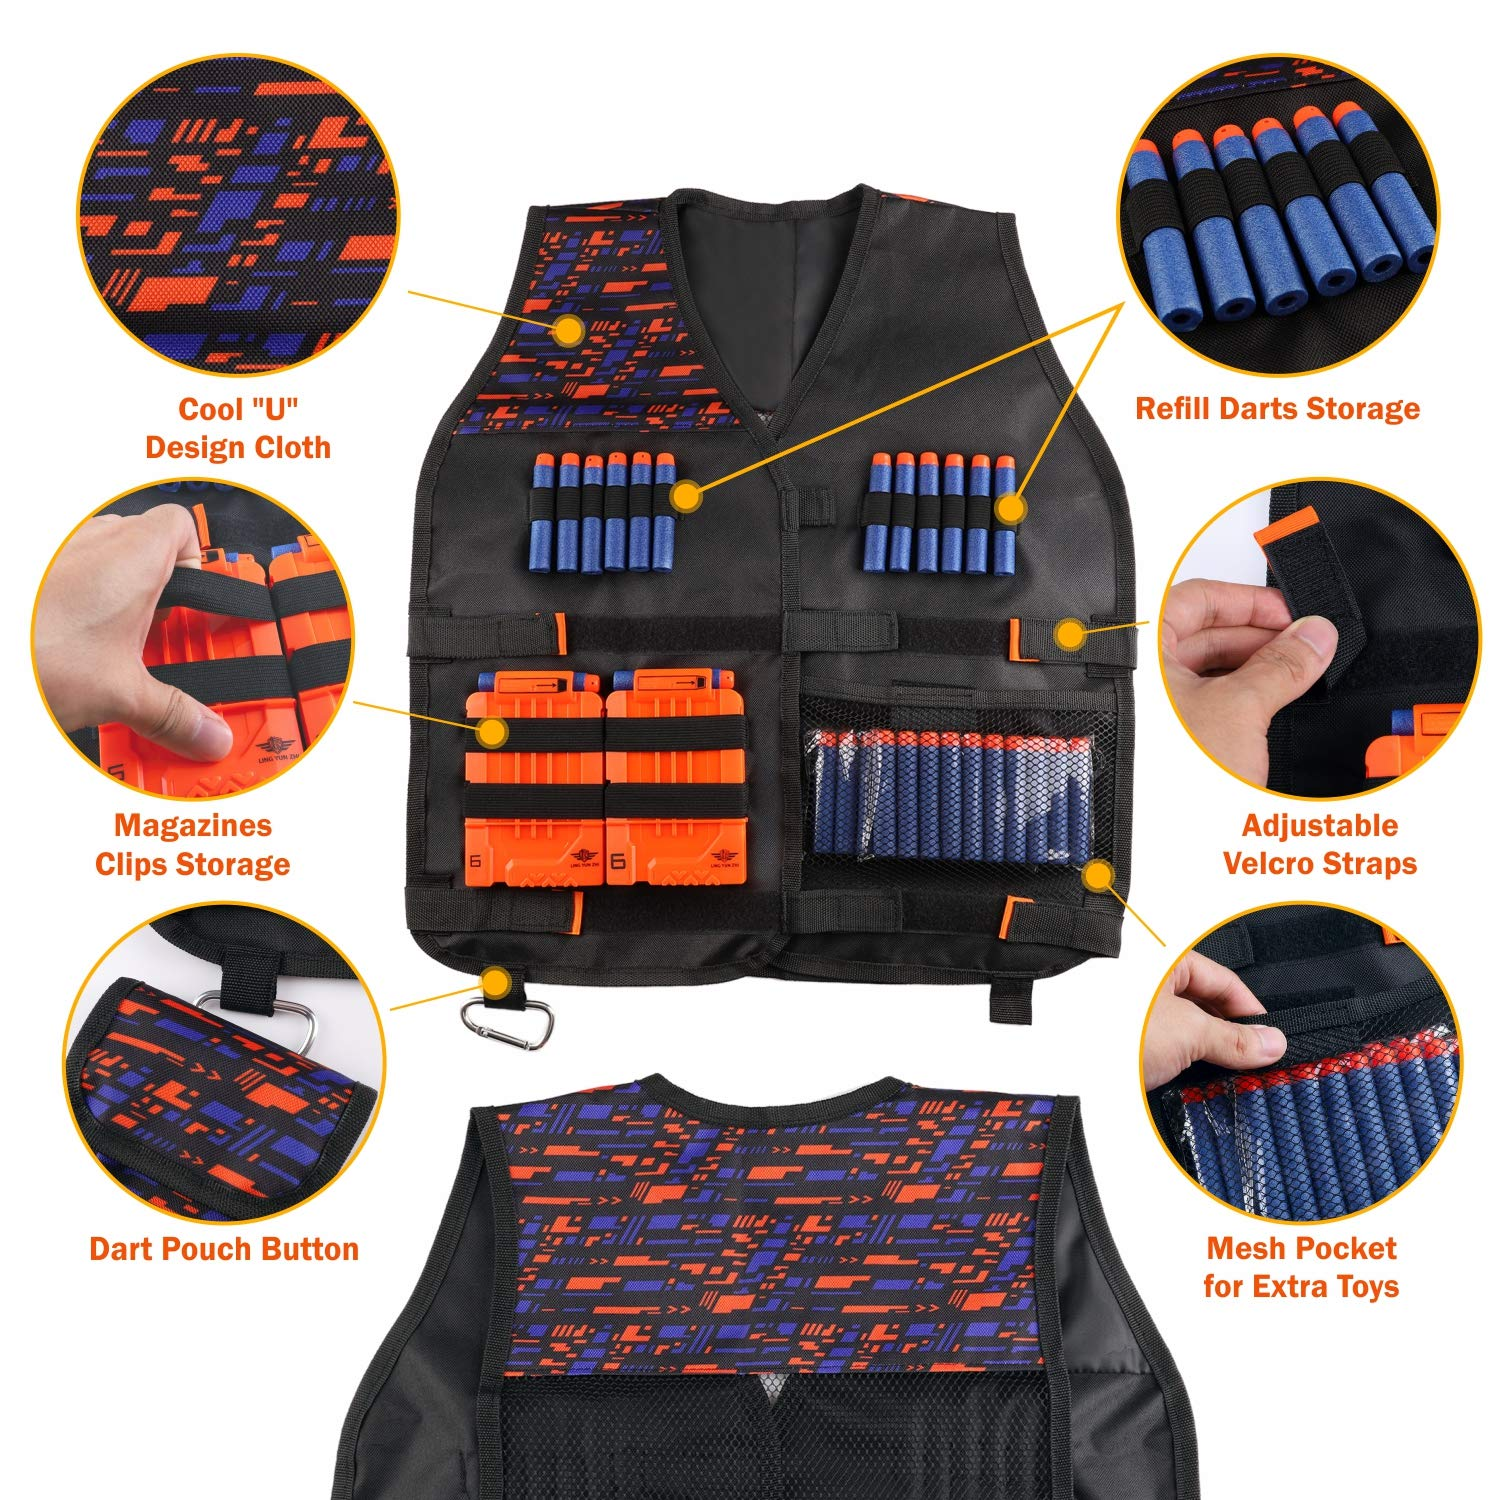 UWANTME Kids Tactical Vest Kit for Nerf Guns N-Strike Elite Series with Refill Darts, Dart Pouch, Reload Clips, Tactical Mask, Wrist Band and Protective Glasses for Boys by UWANTME (Image #2)